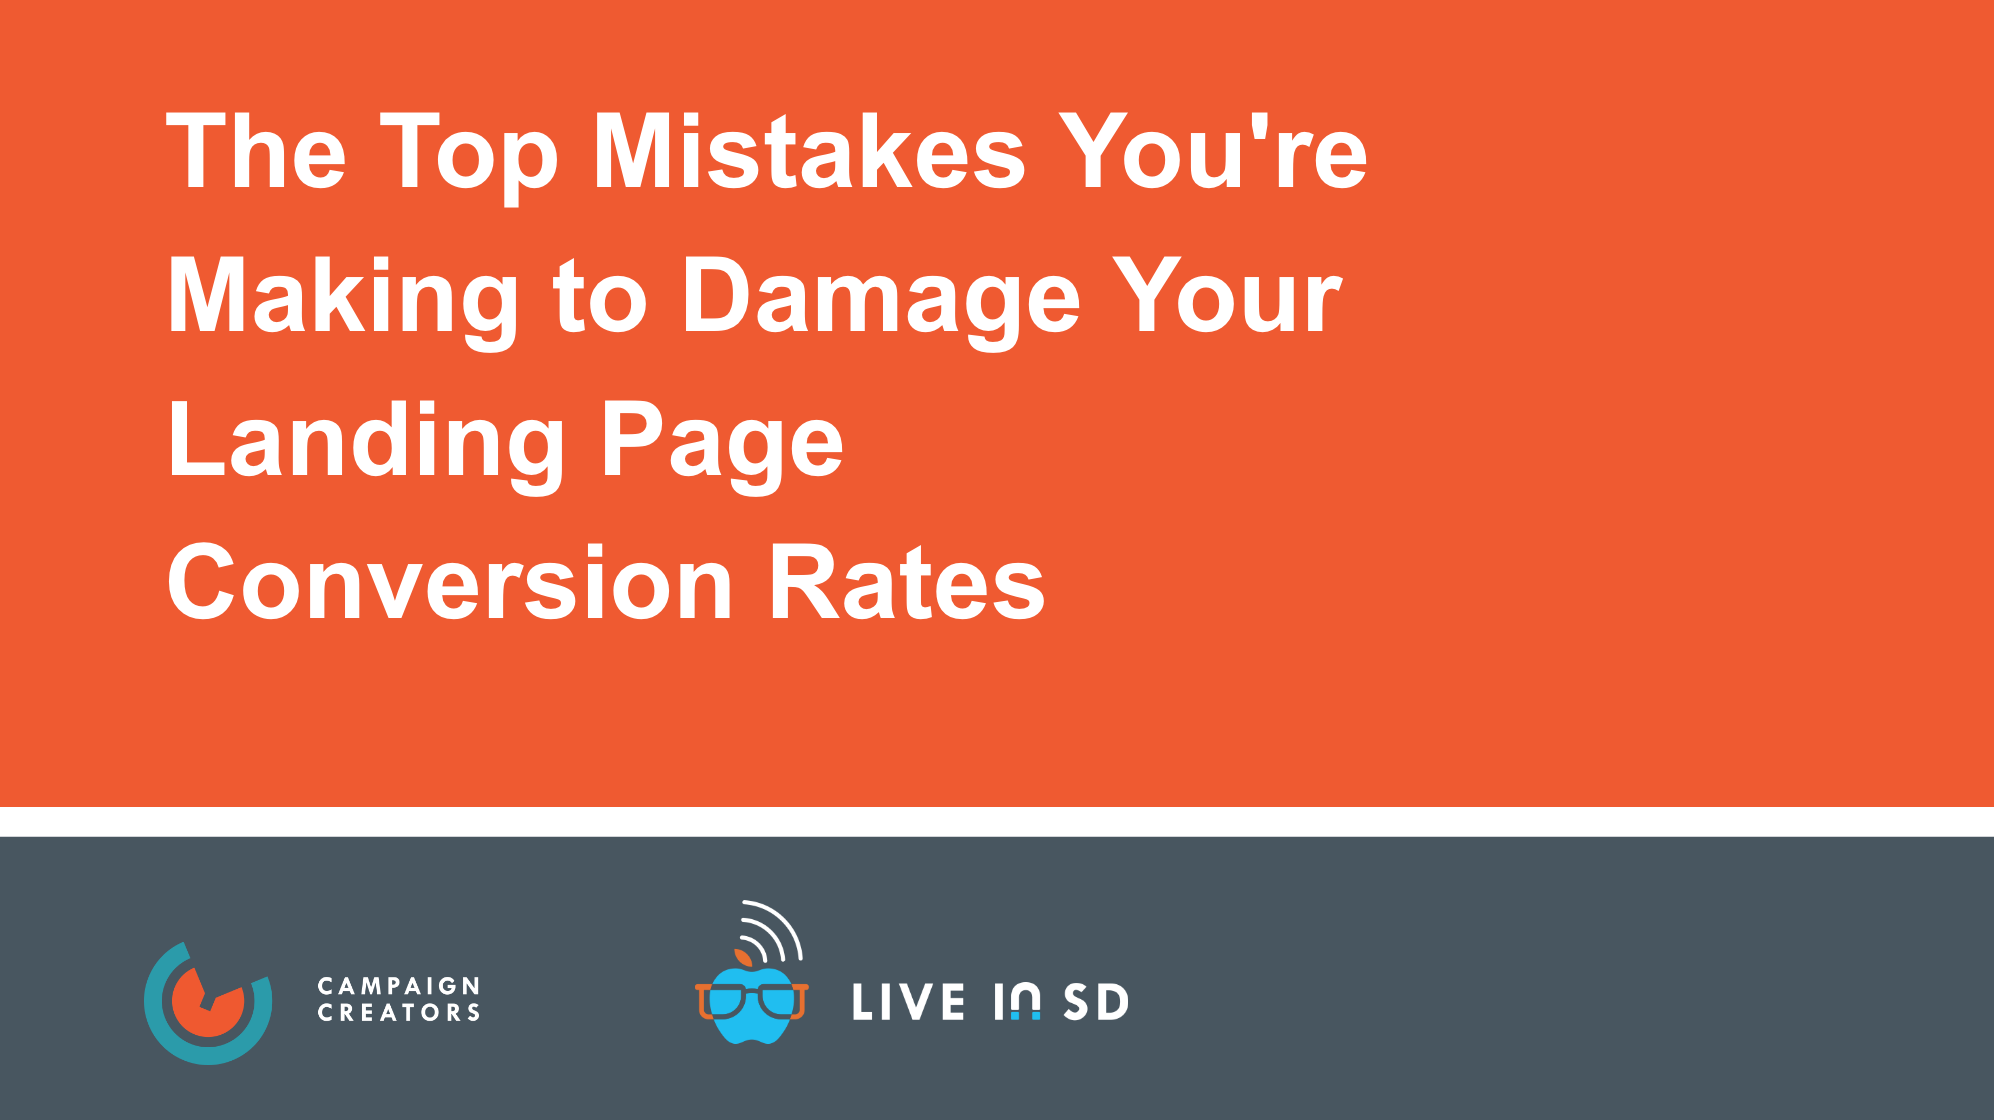 Top Mistakes You're Making That Damage Your Landing Page Conversion Rates